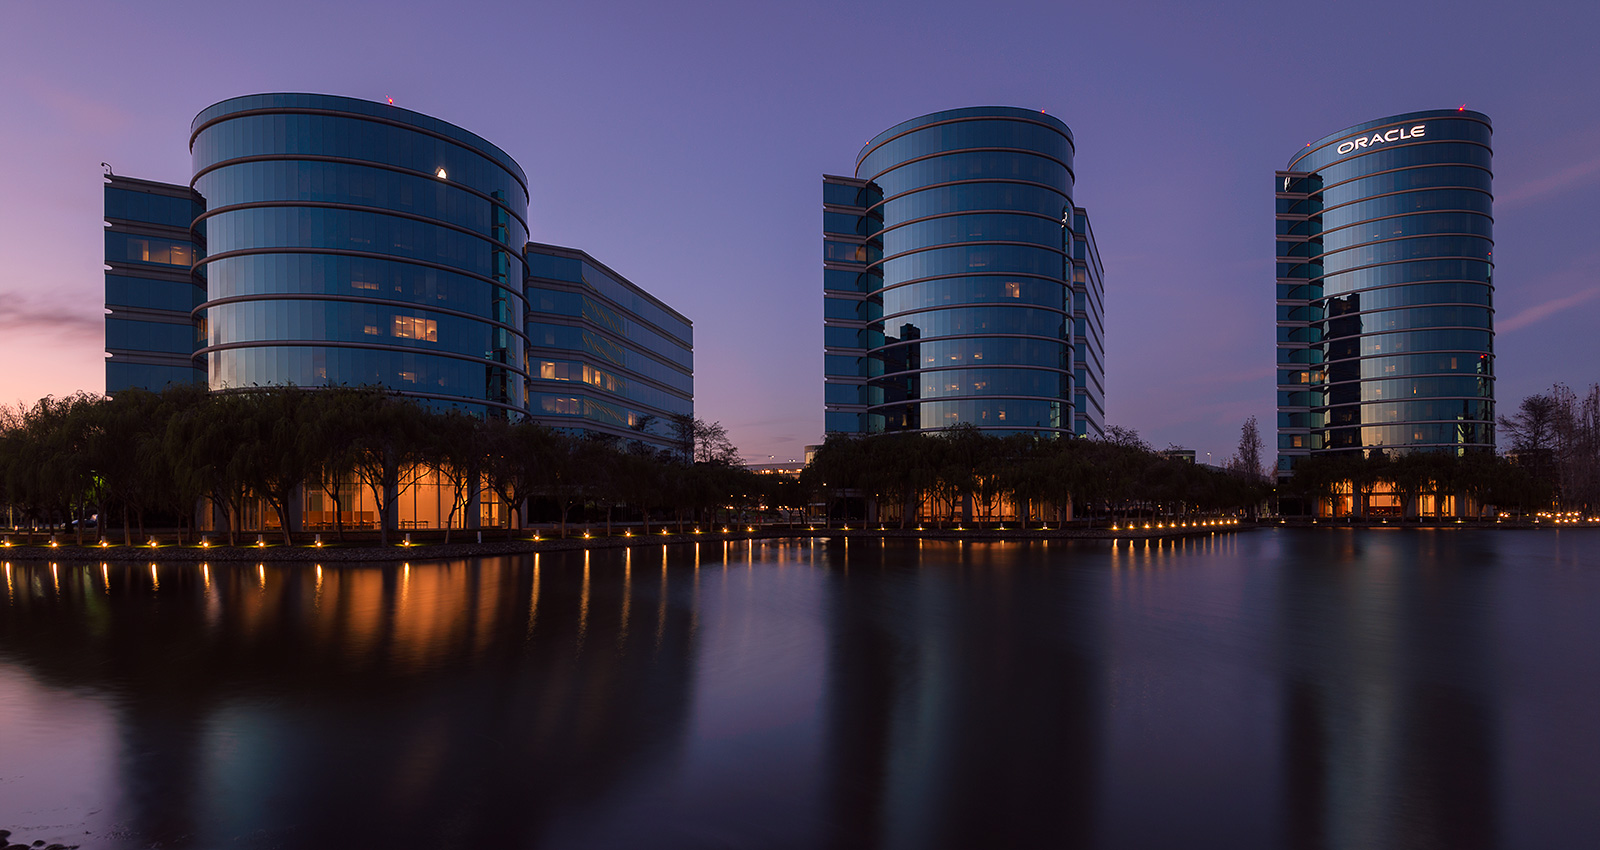 Oracle Corporation Campus